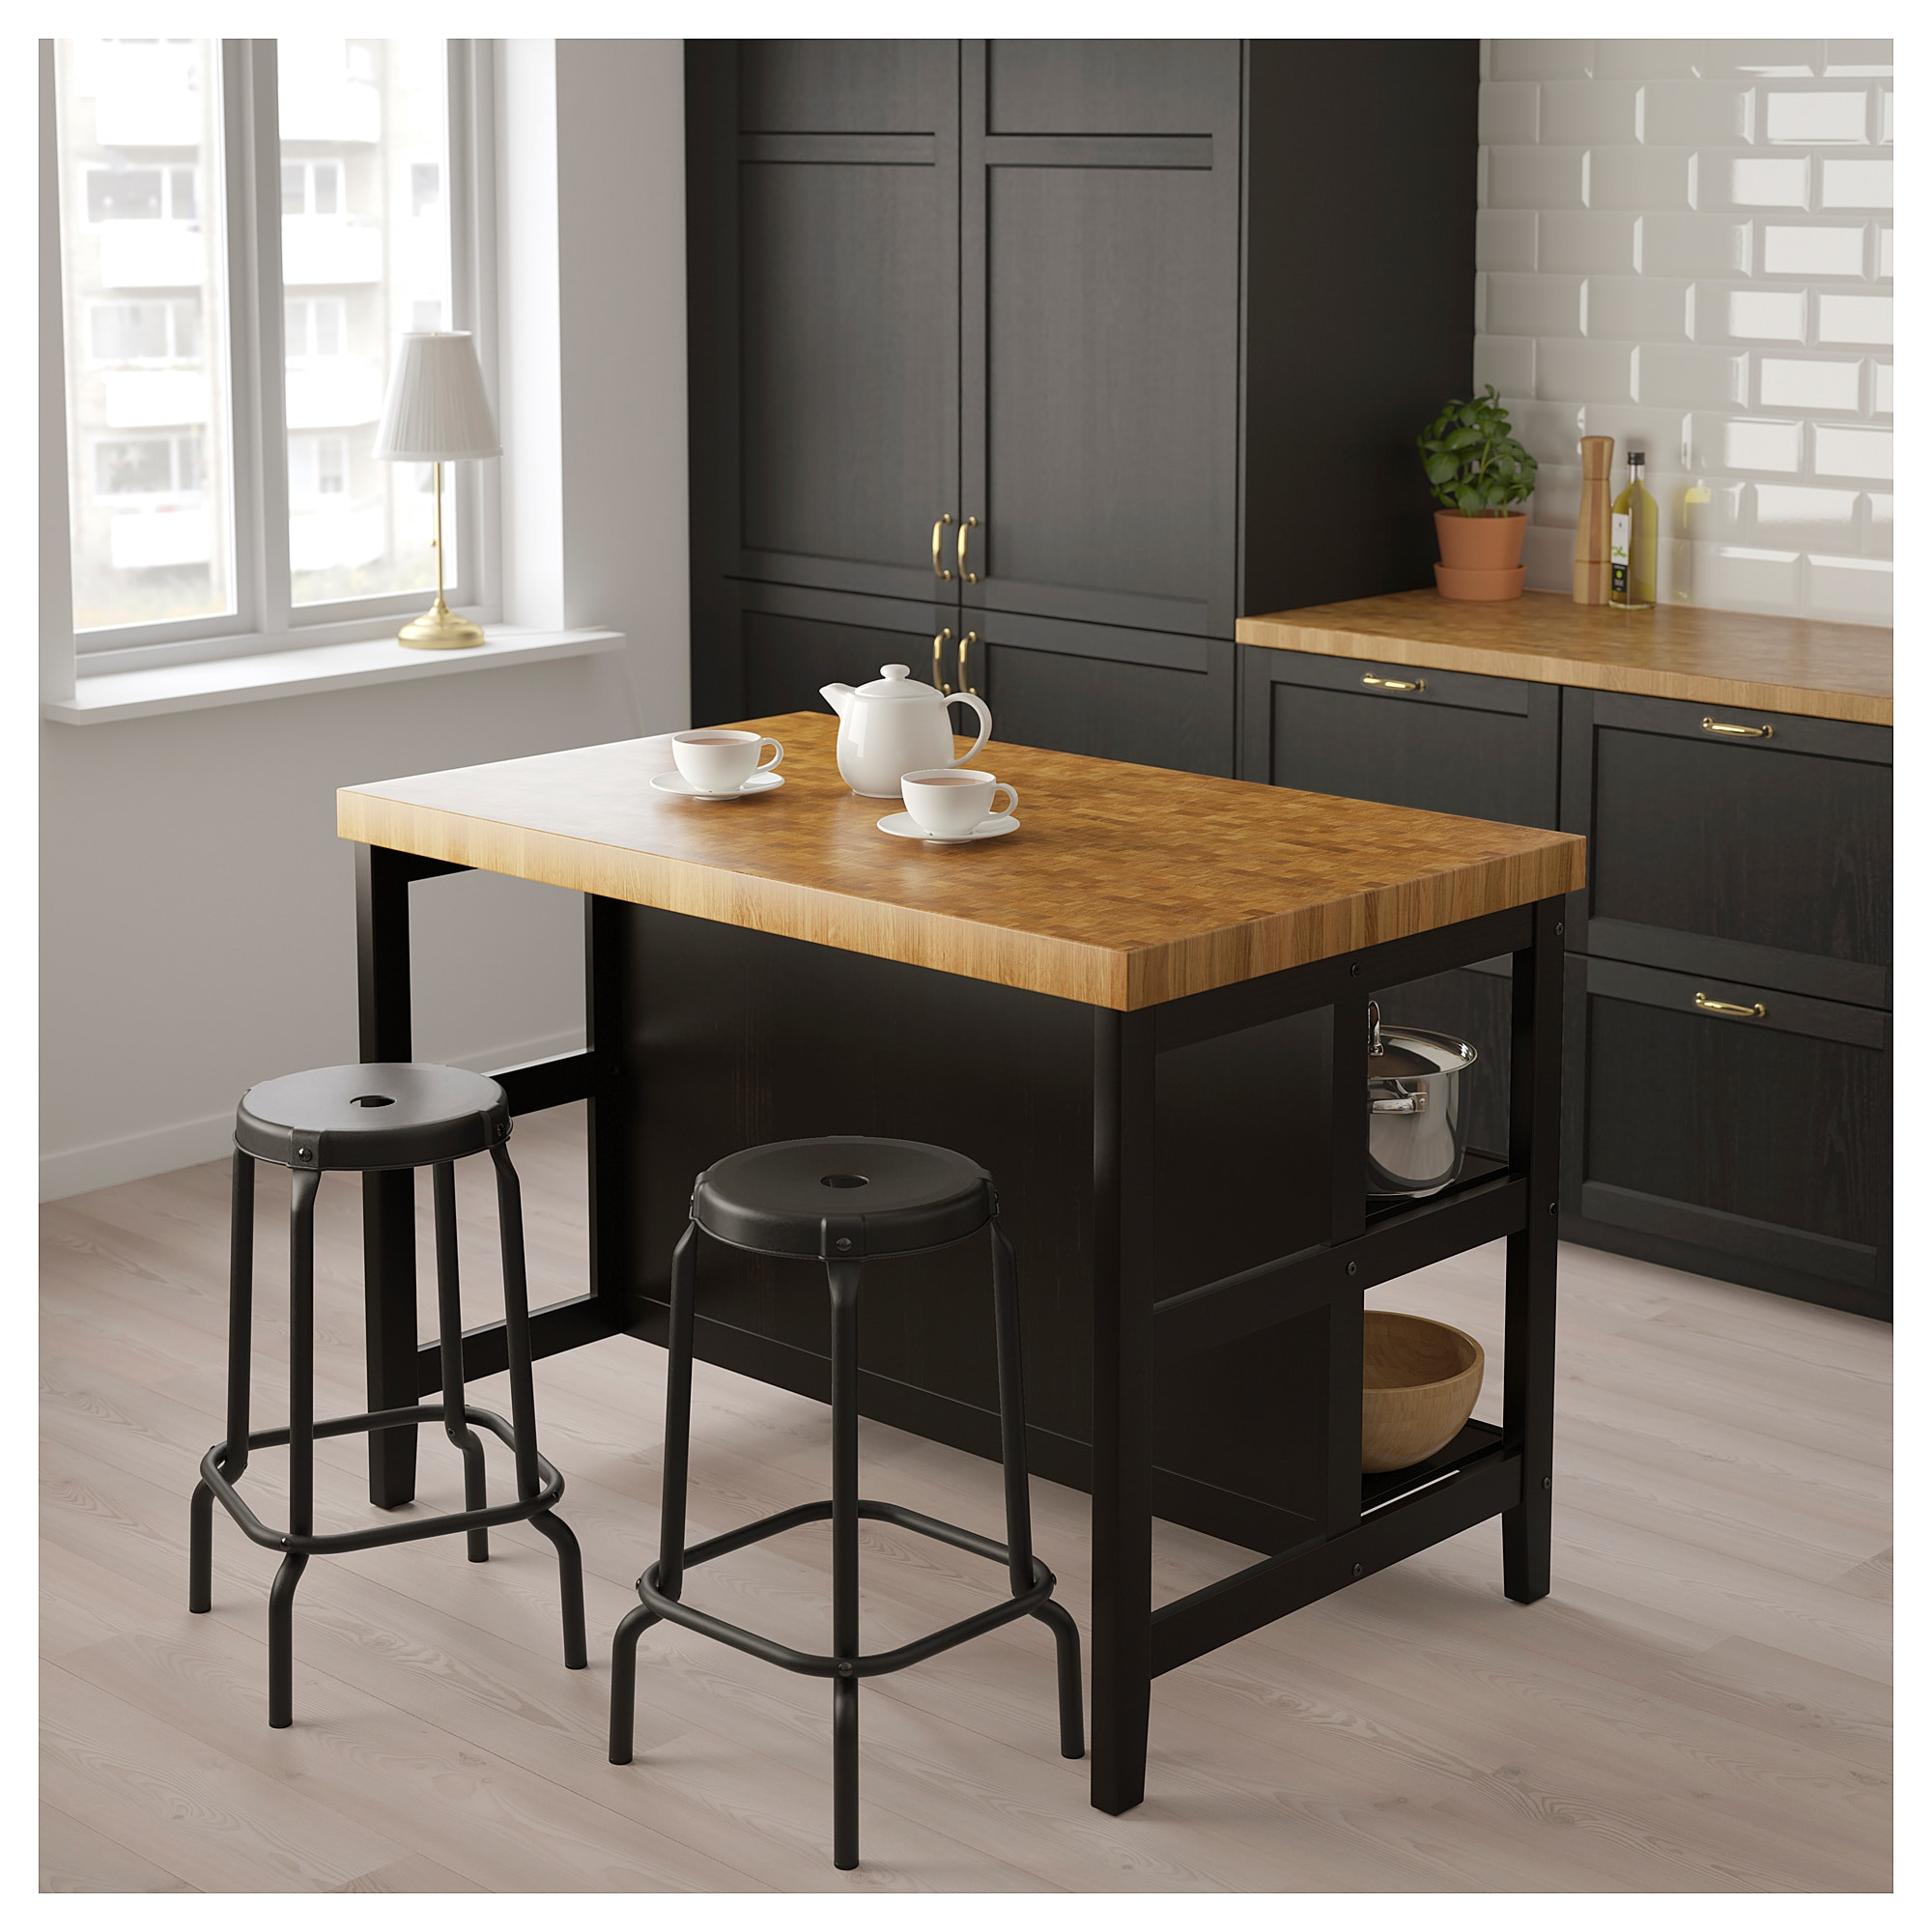 Ikea Varde Keukeneiland Vadholma Kitchen Island Black Oak Spaces What Goes Inside